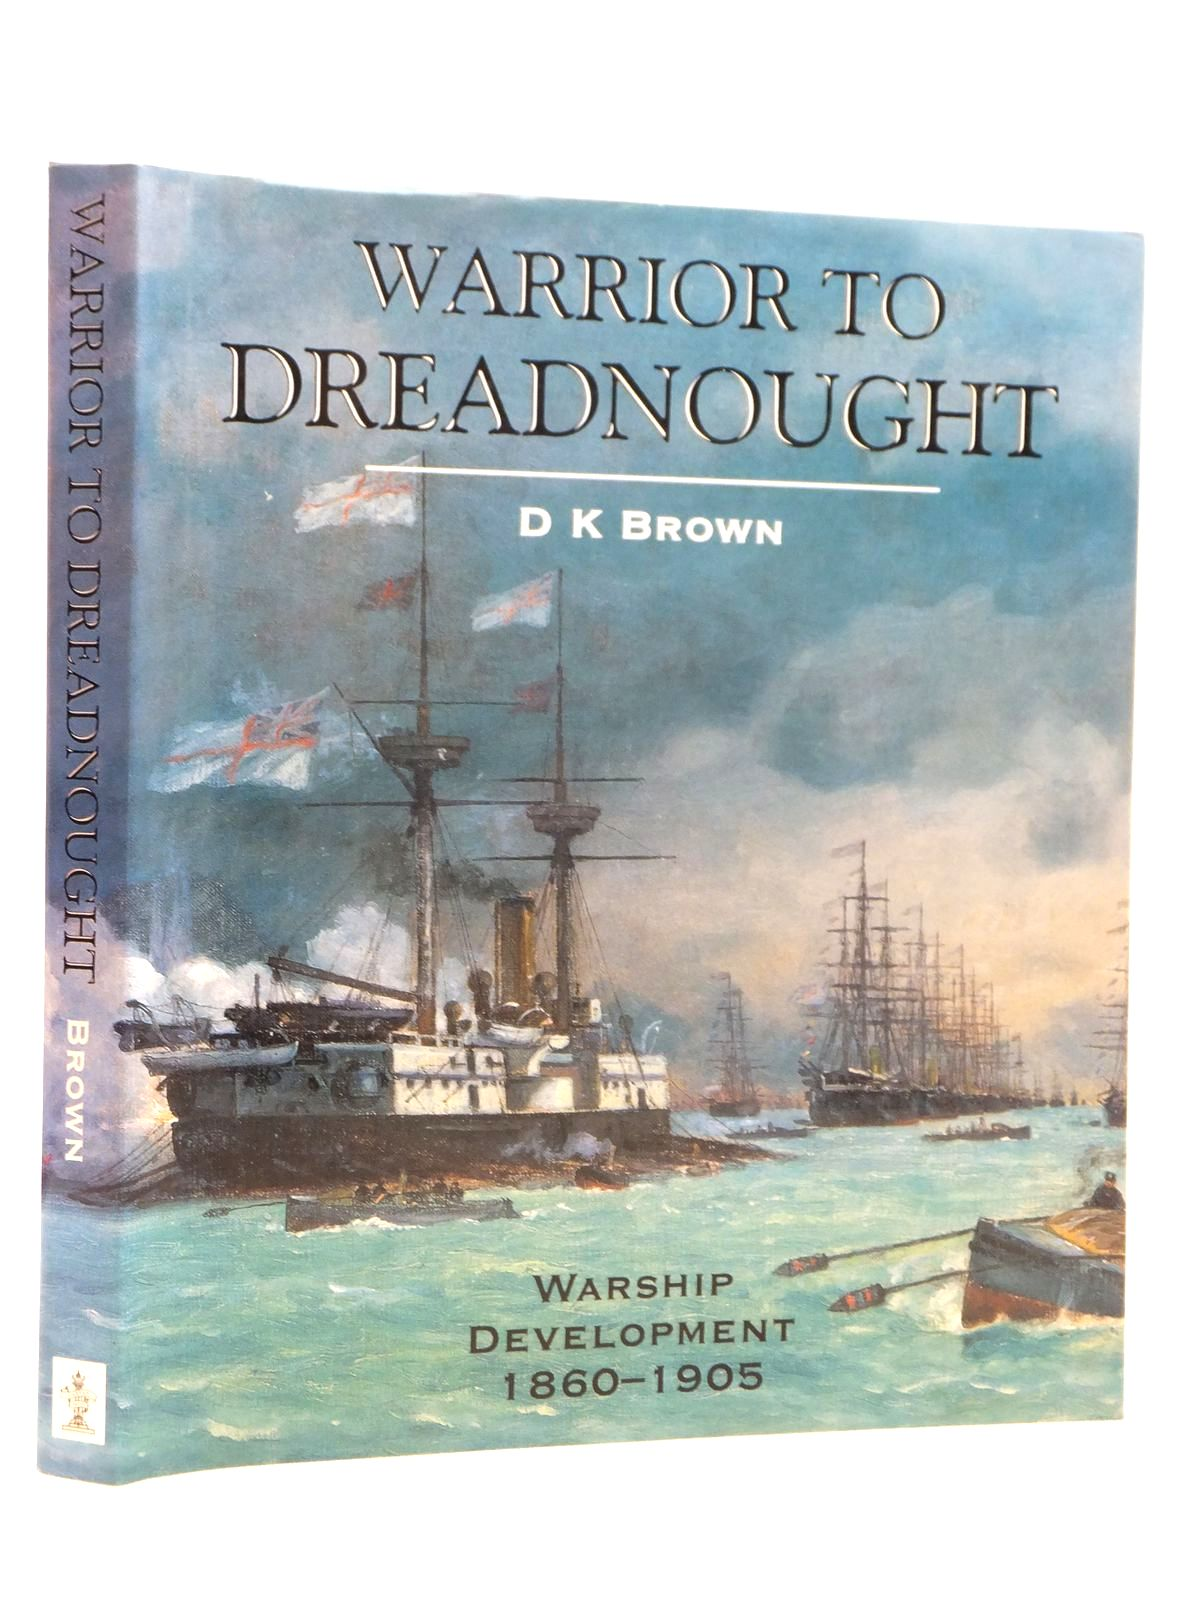 Photo of WARRIOR TO DREADNOUGHT written by Brown, David K. published by Caxton Editions (STOCK CODE: 1608229)  for sale by Stella & Rose's Books